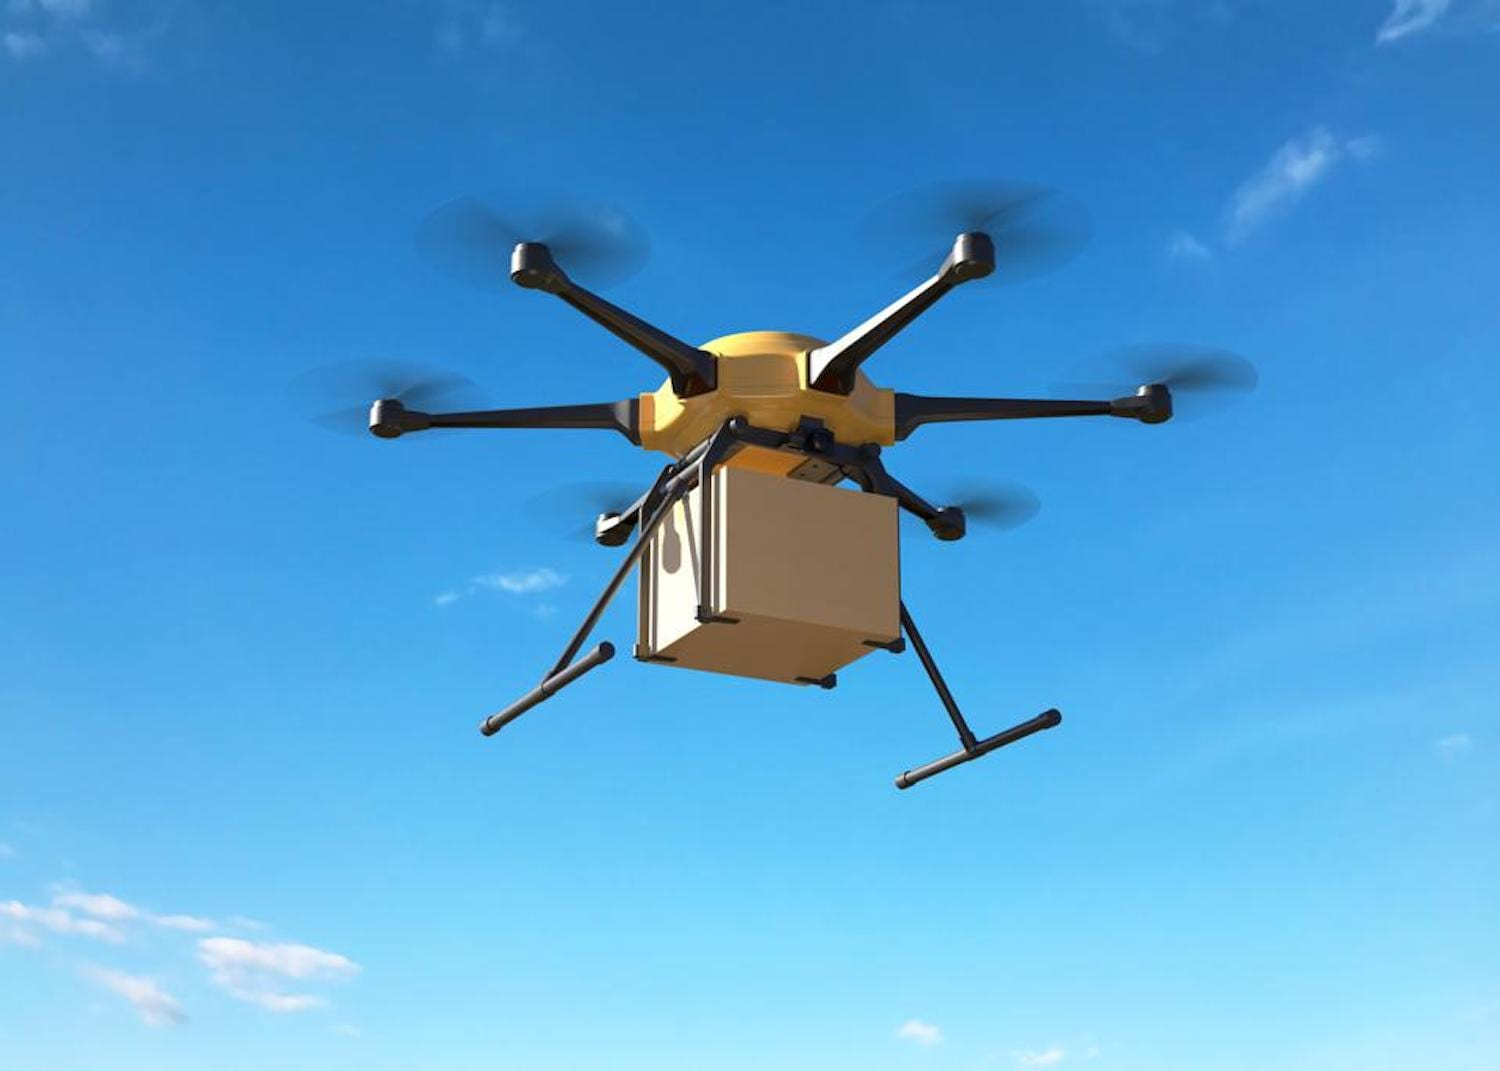 FAA moves slowly on type certification of drones